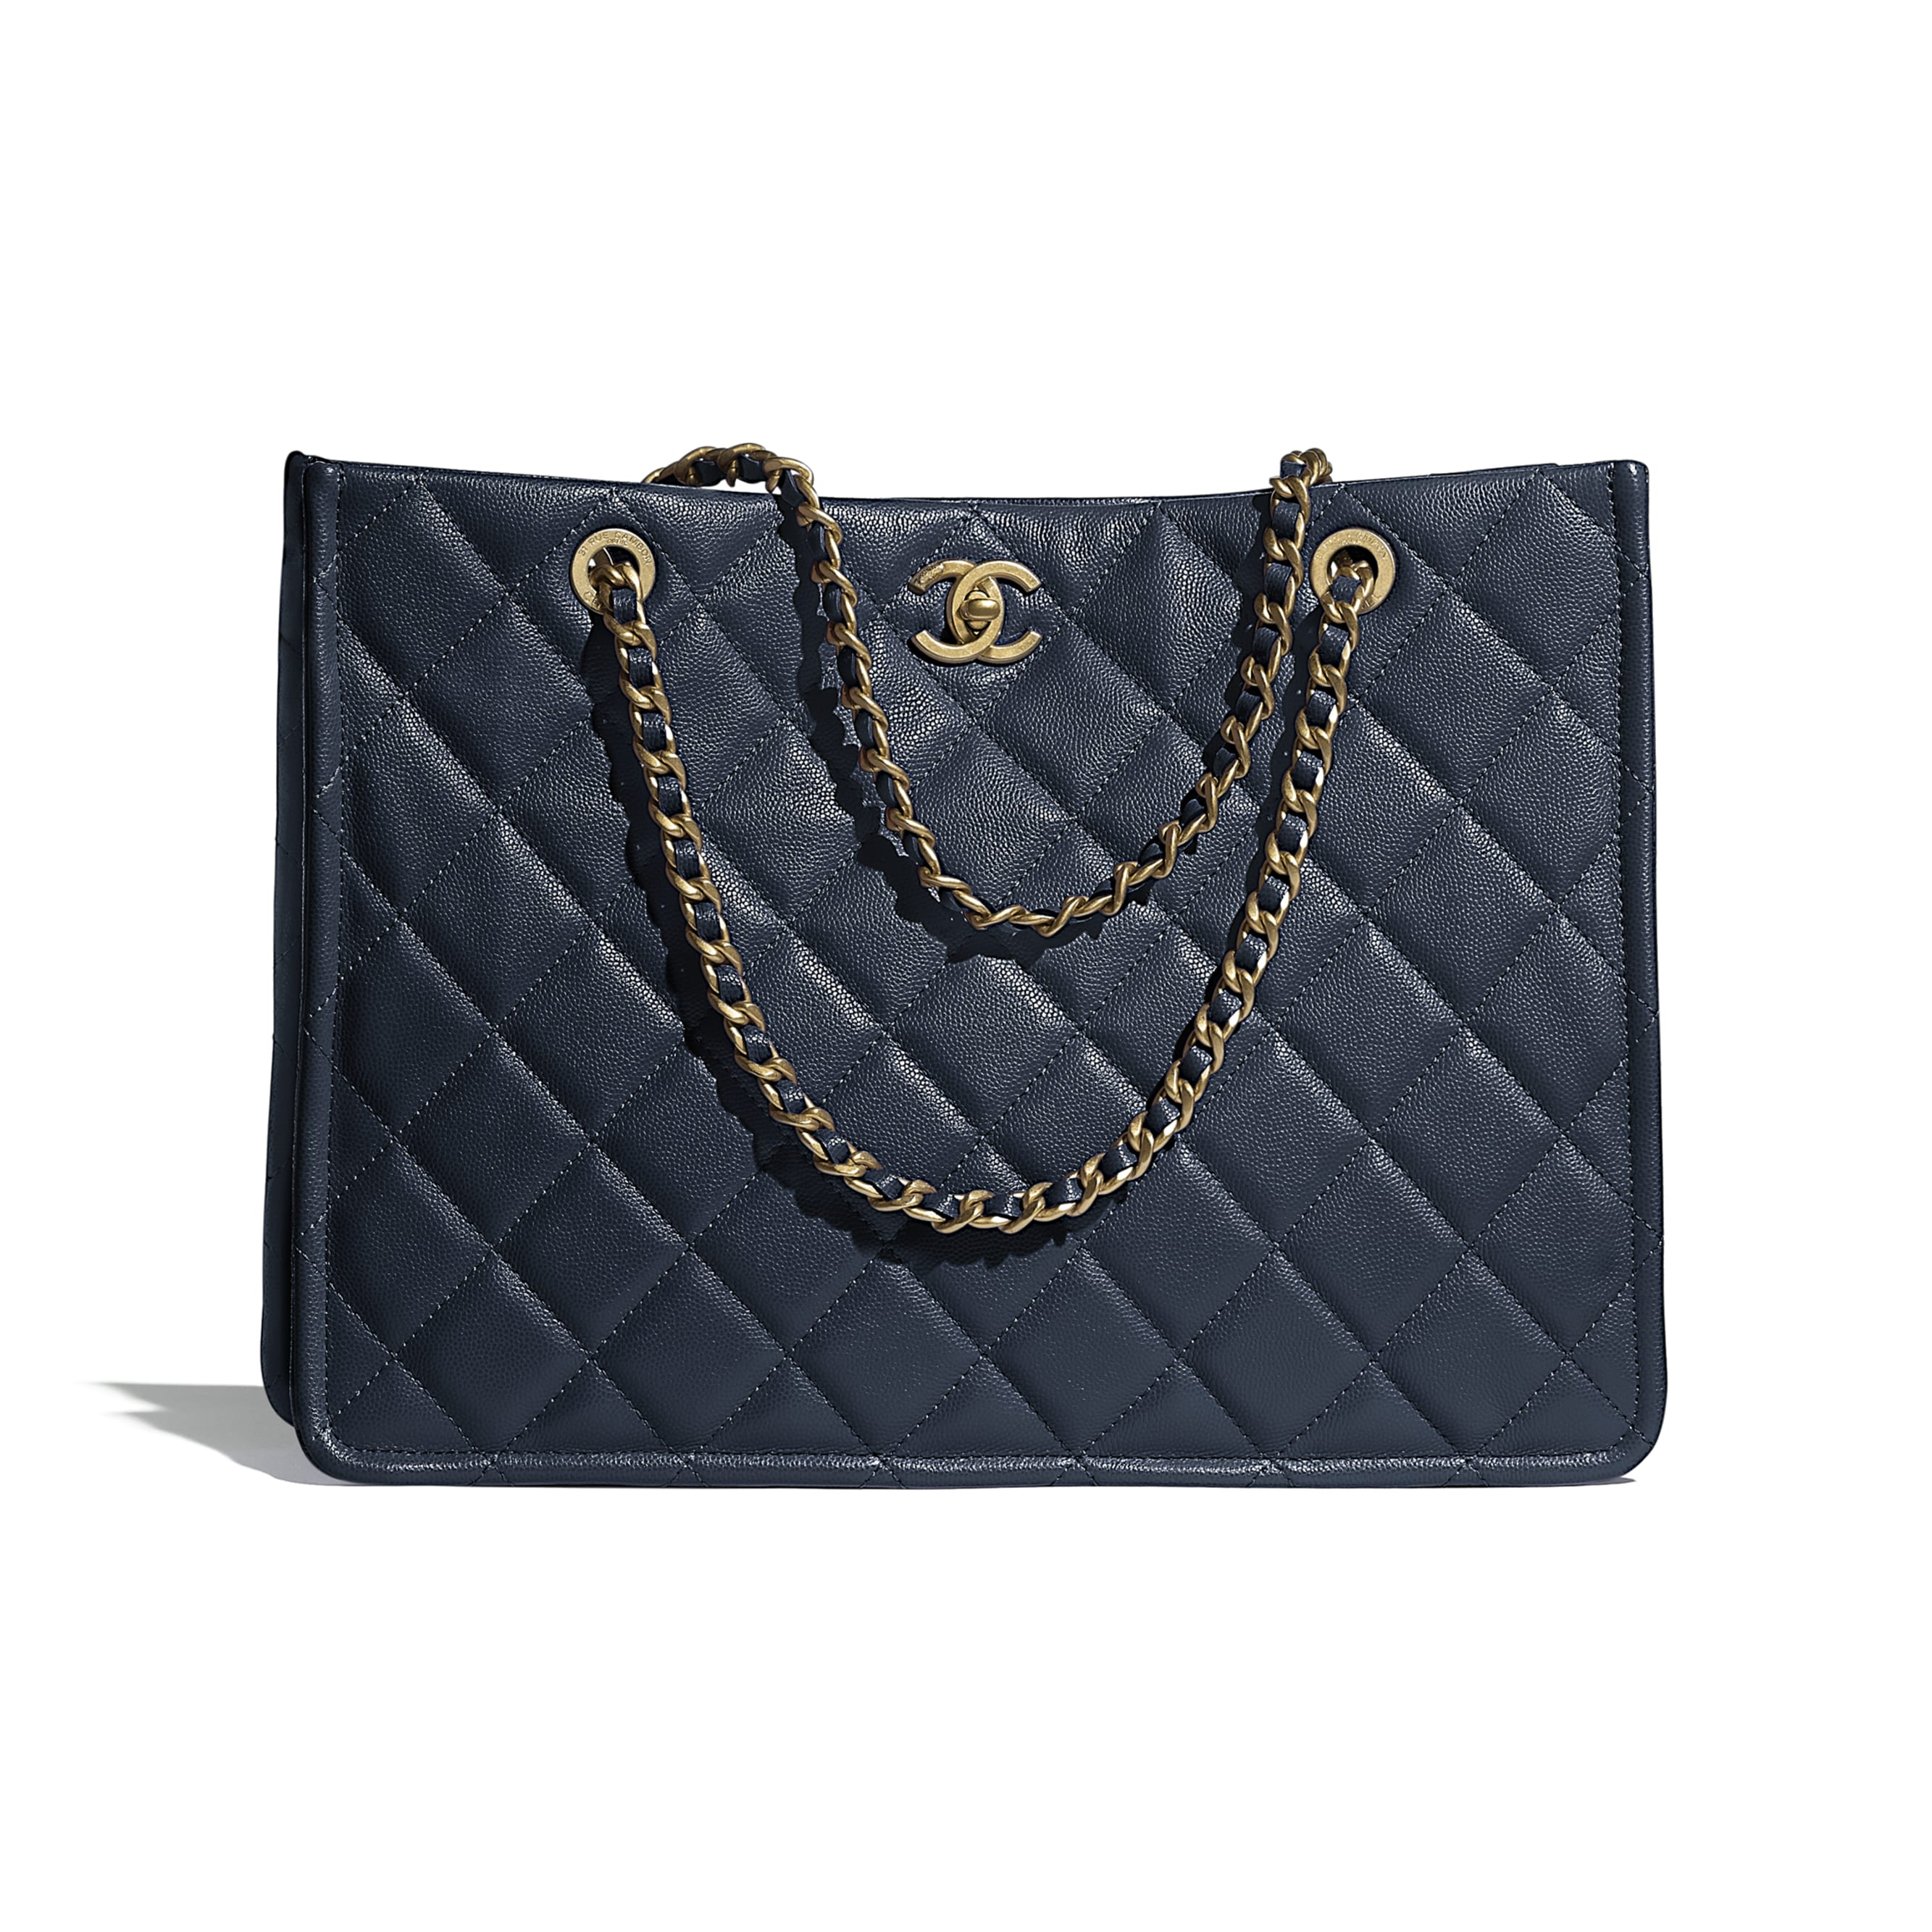 Large Tote - Navy Blue - Grained Calfskin & Gold-Tone Metal - CHANEL - Default view - see standard sized version